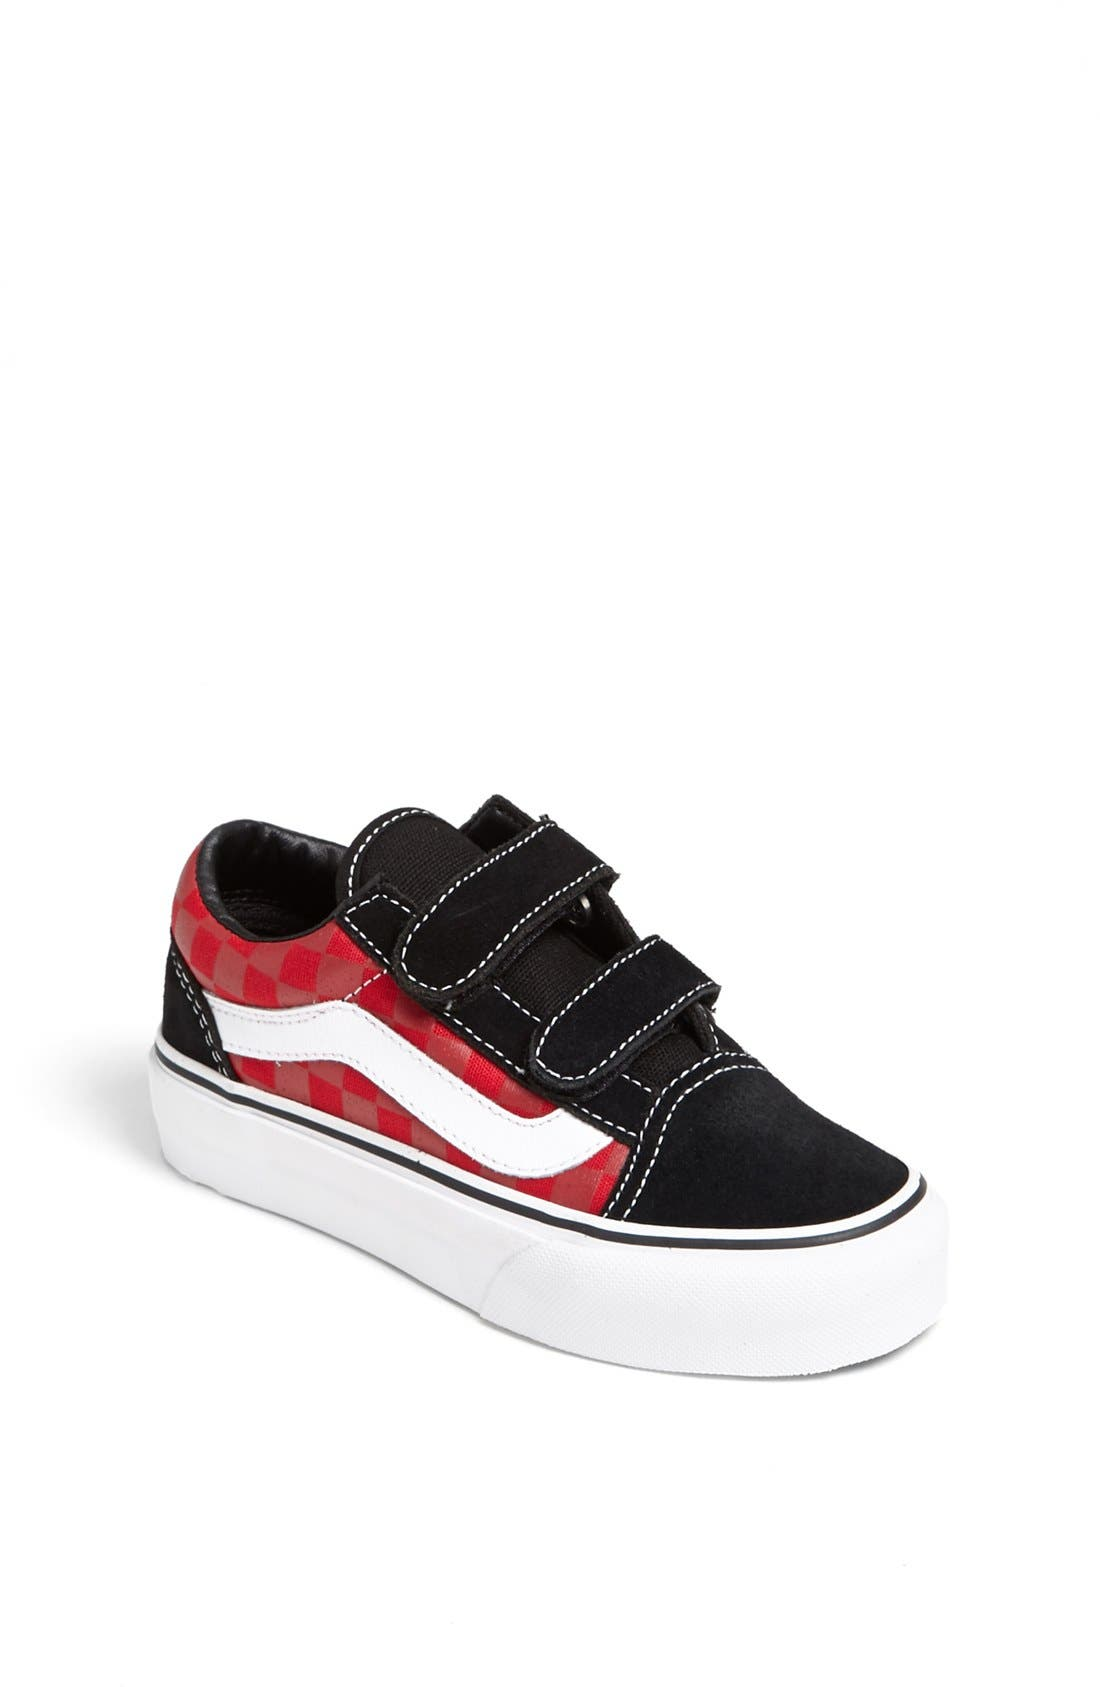 Alternate Image 1 Selected - Vans 'Old Skool' Sneaker (Toddler)